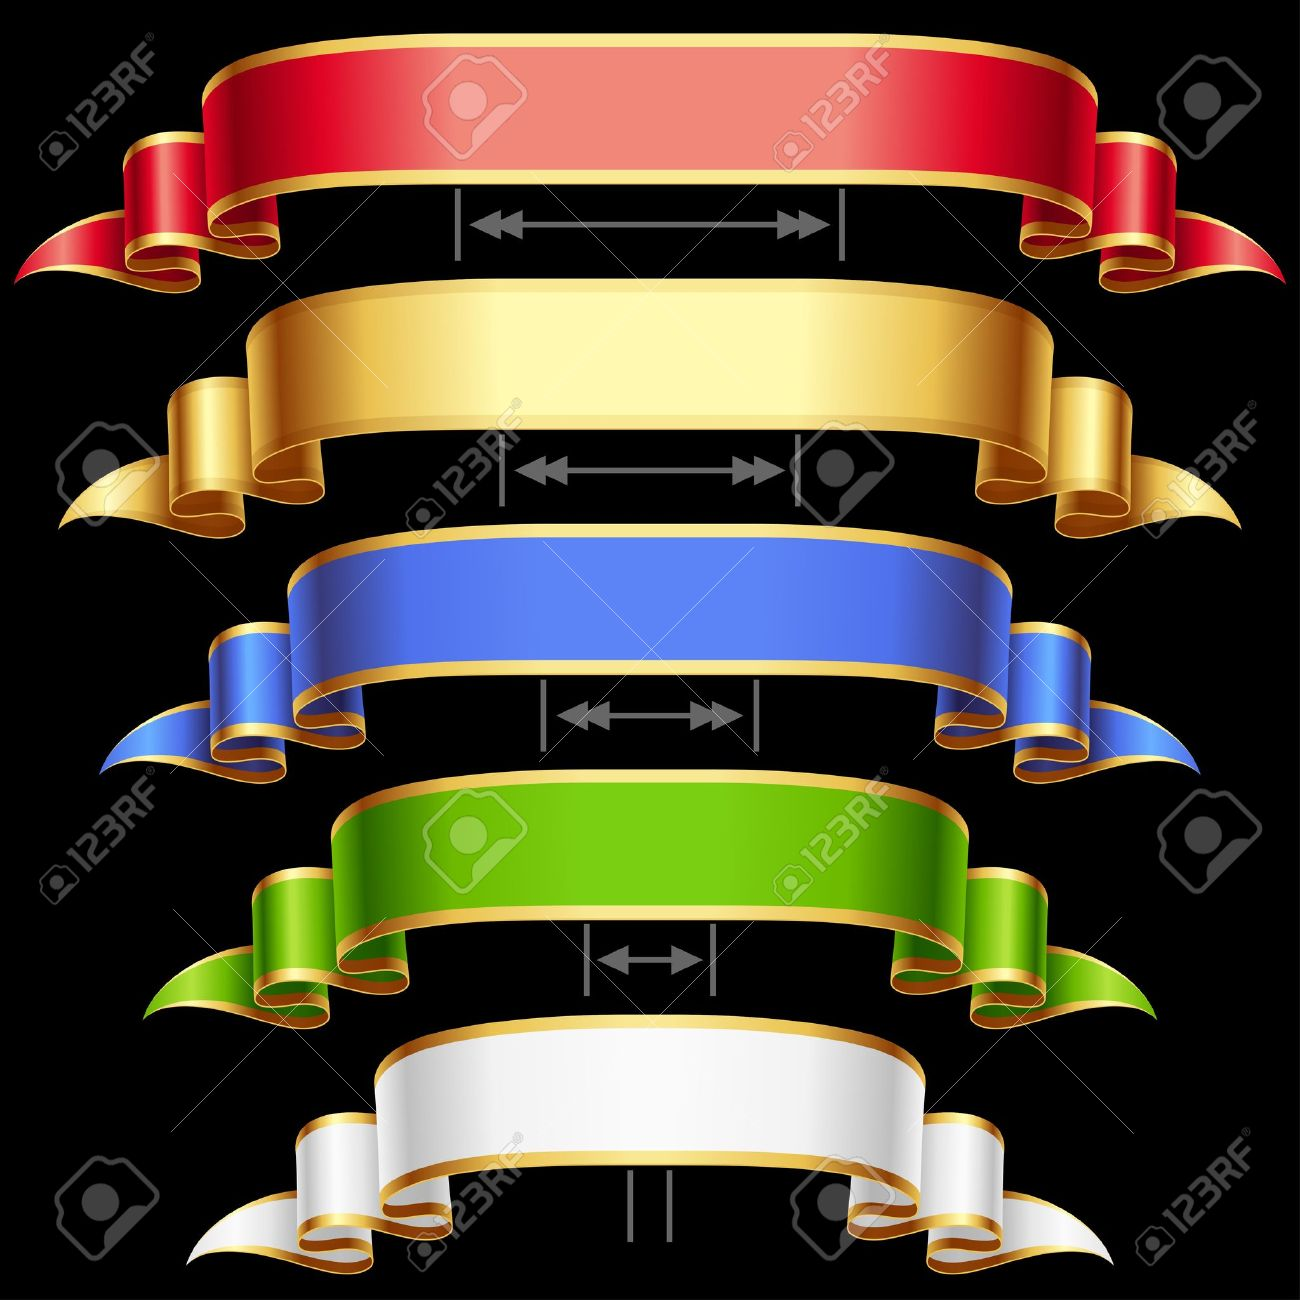 Ribbon set with adjusting length Vector red, golden, blue, green and white frame isolated on background - 13643292